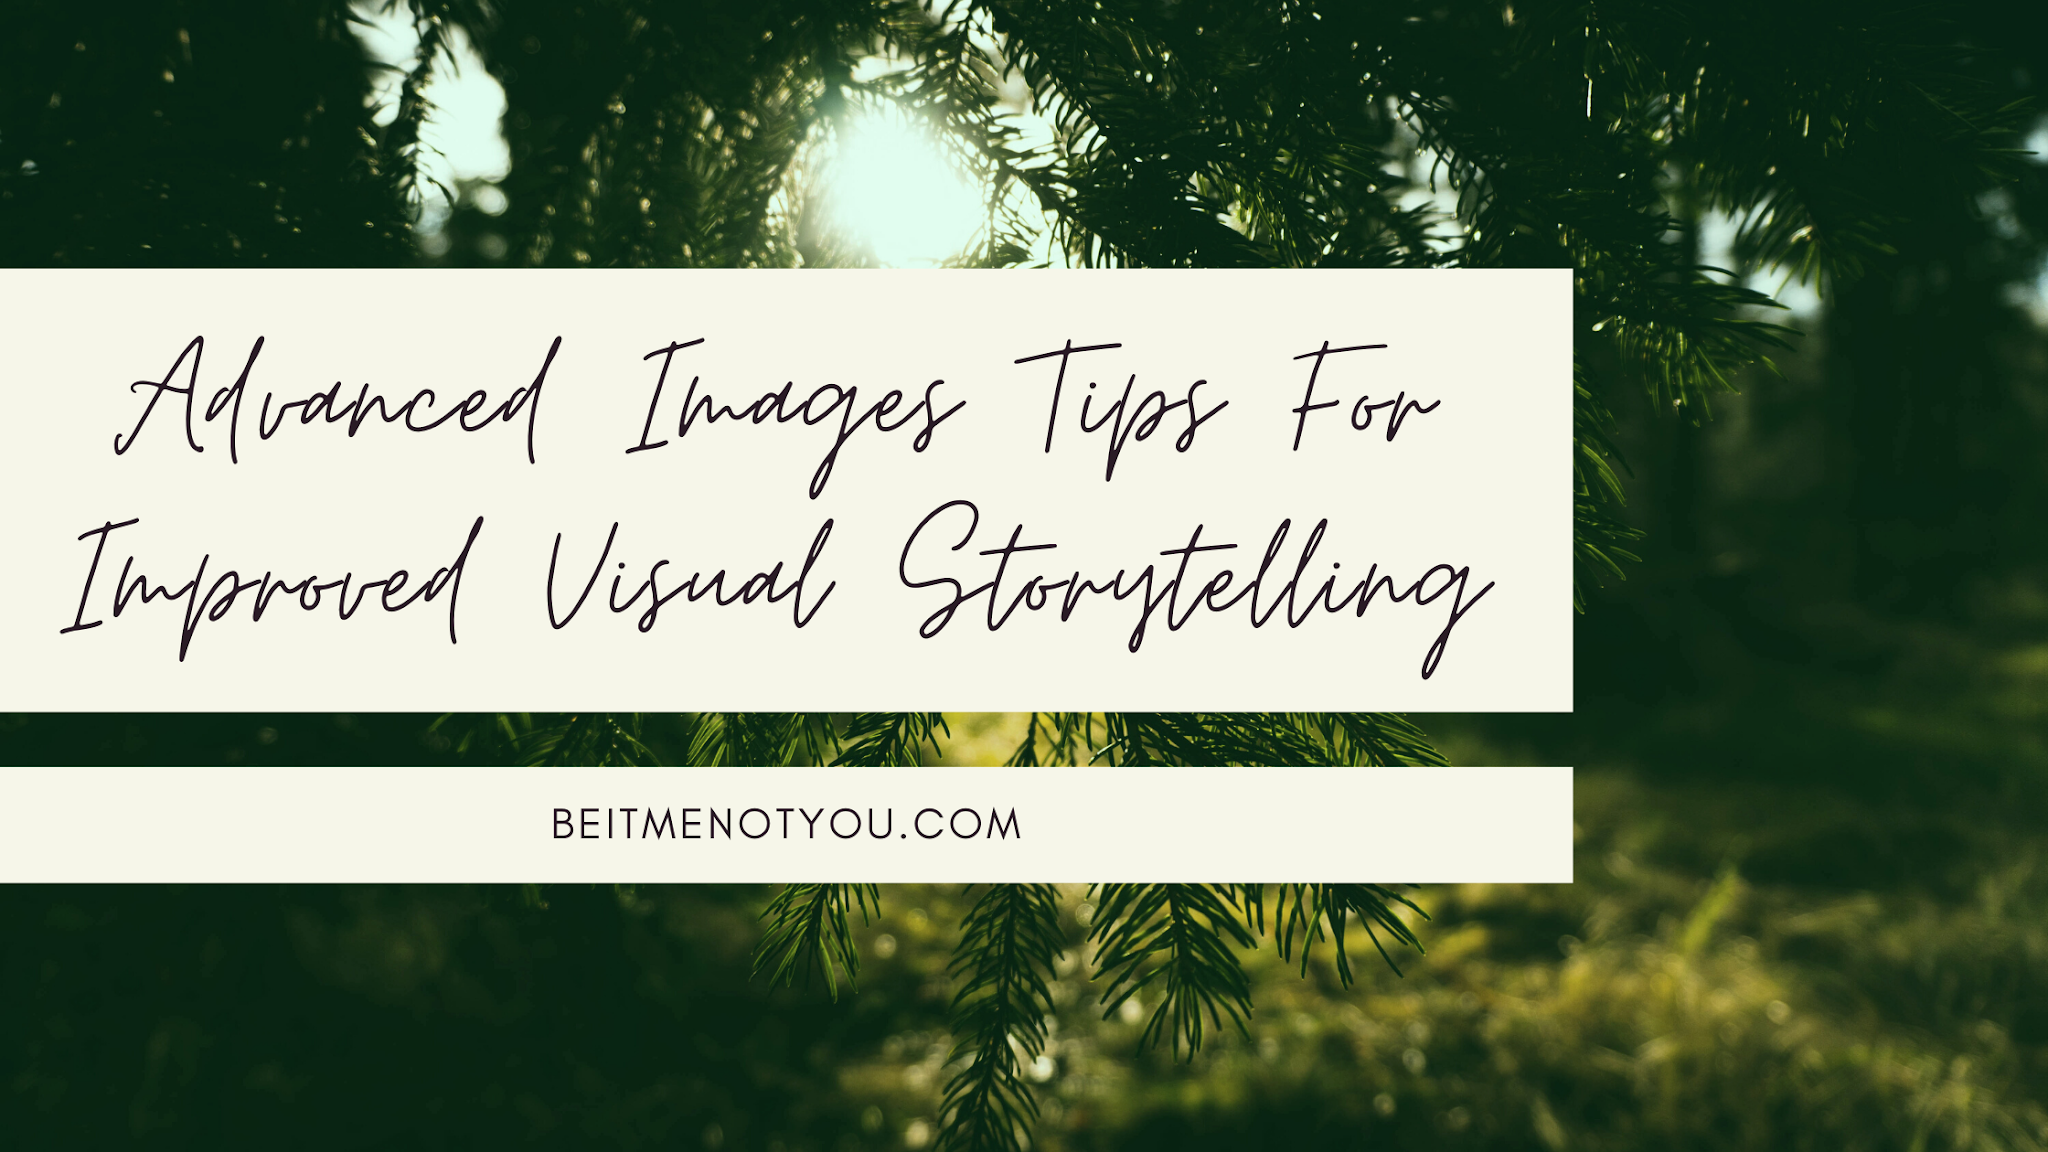 Advanced Images Tips For Improved Visual Storytelling